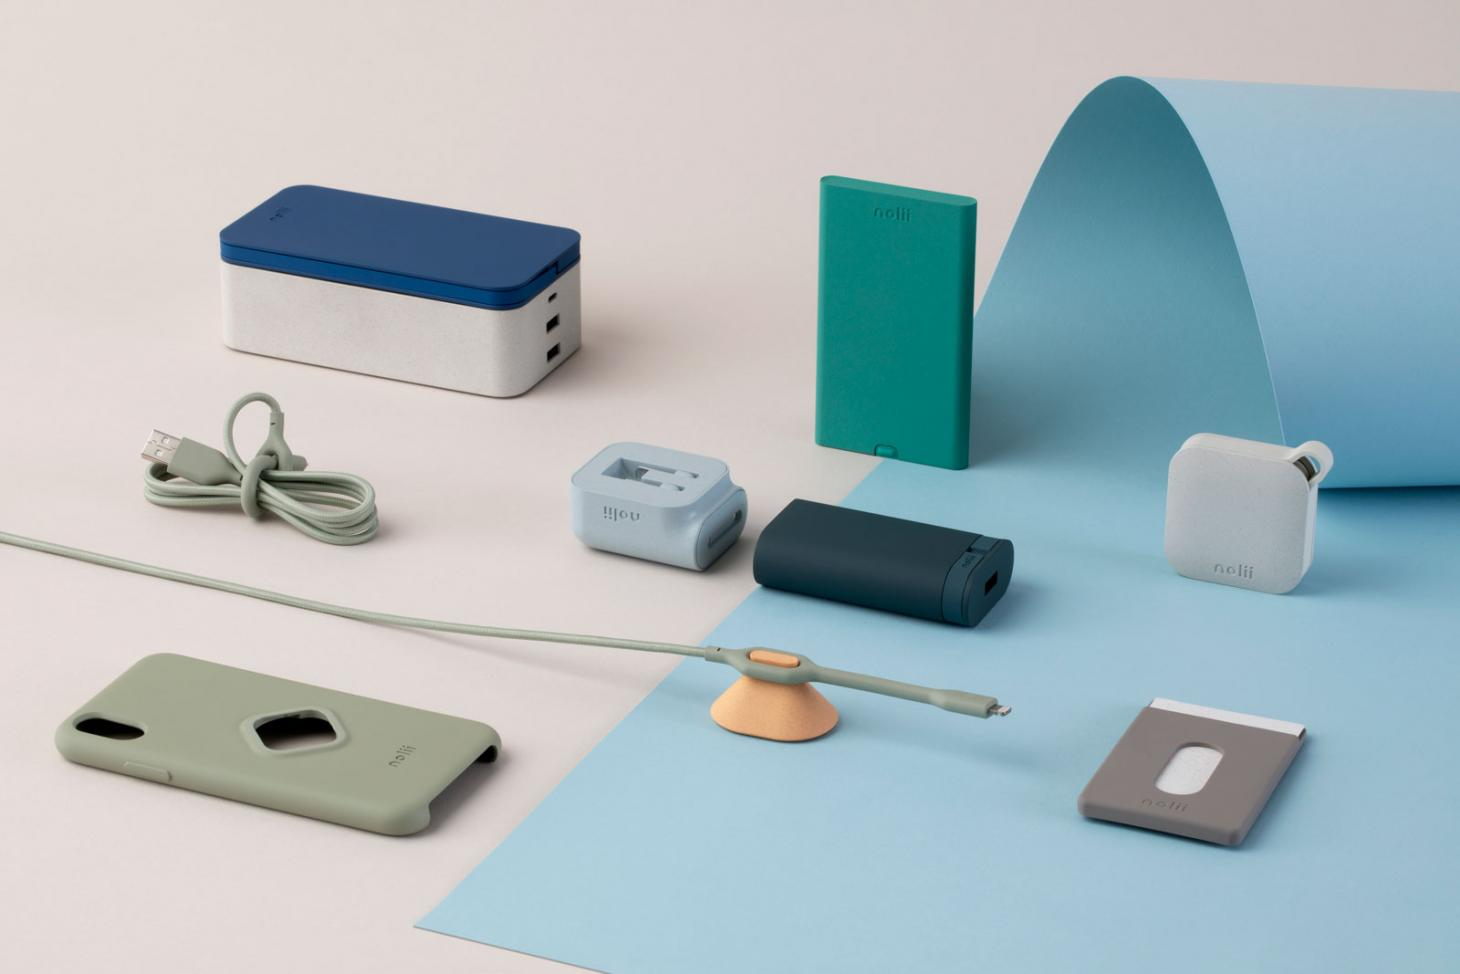 Noli launches new tech at London Design Festival